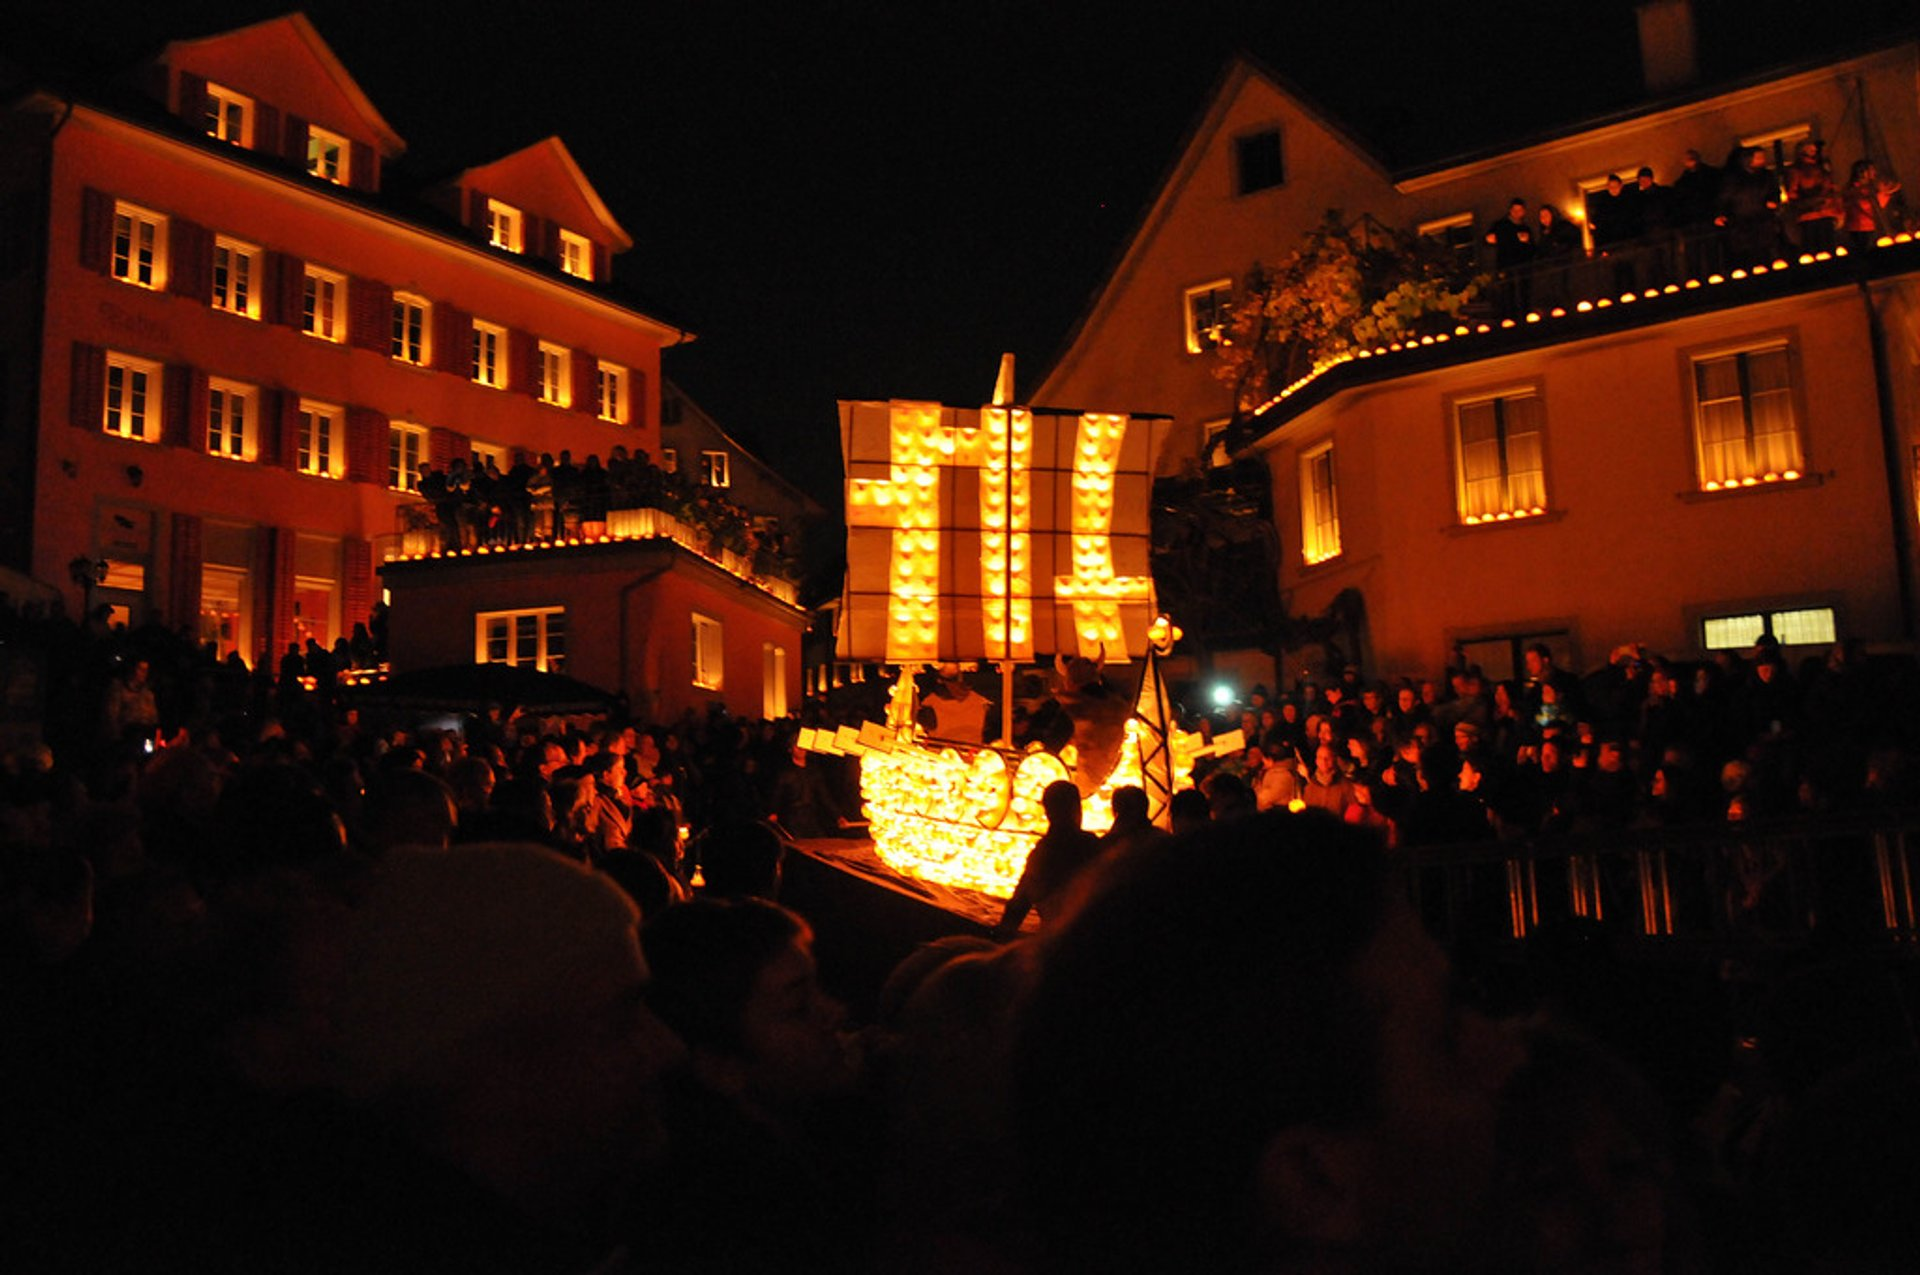 Räbechilbi: Gourd-Lantern Parade in Richterswil in Switzerland 2020 - Best Time